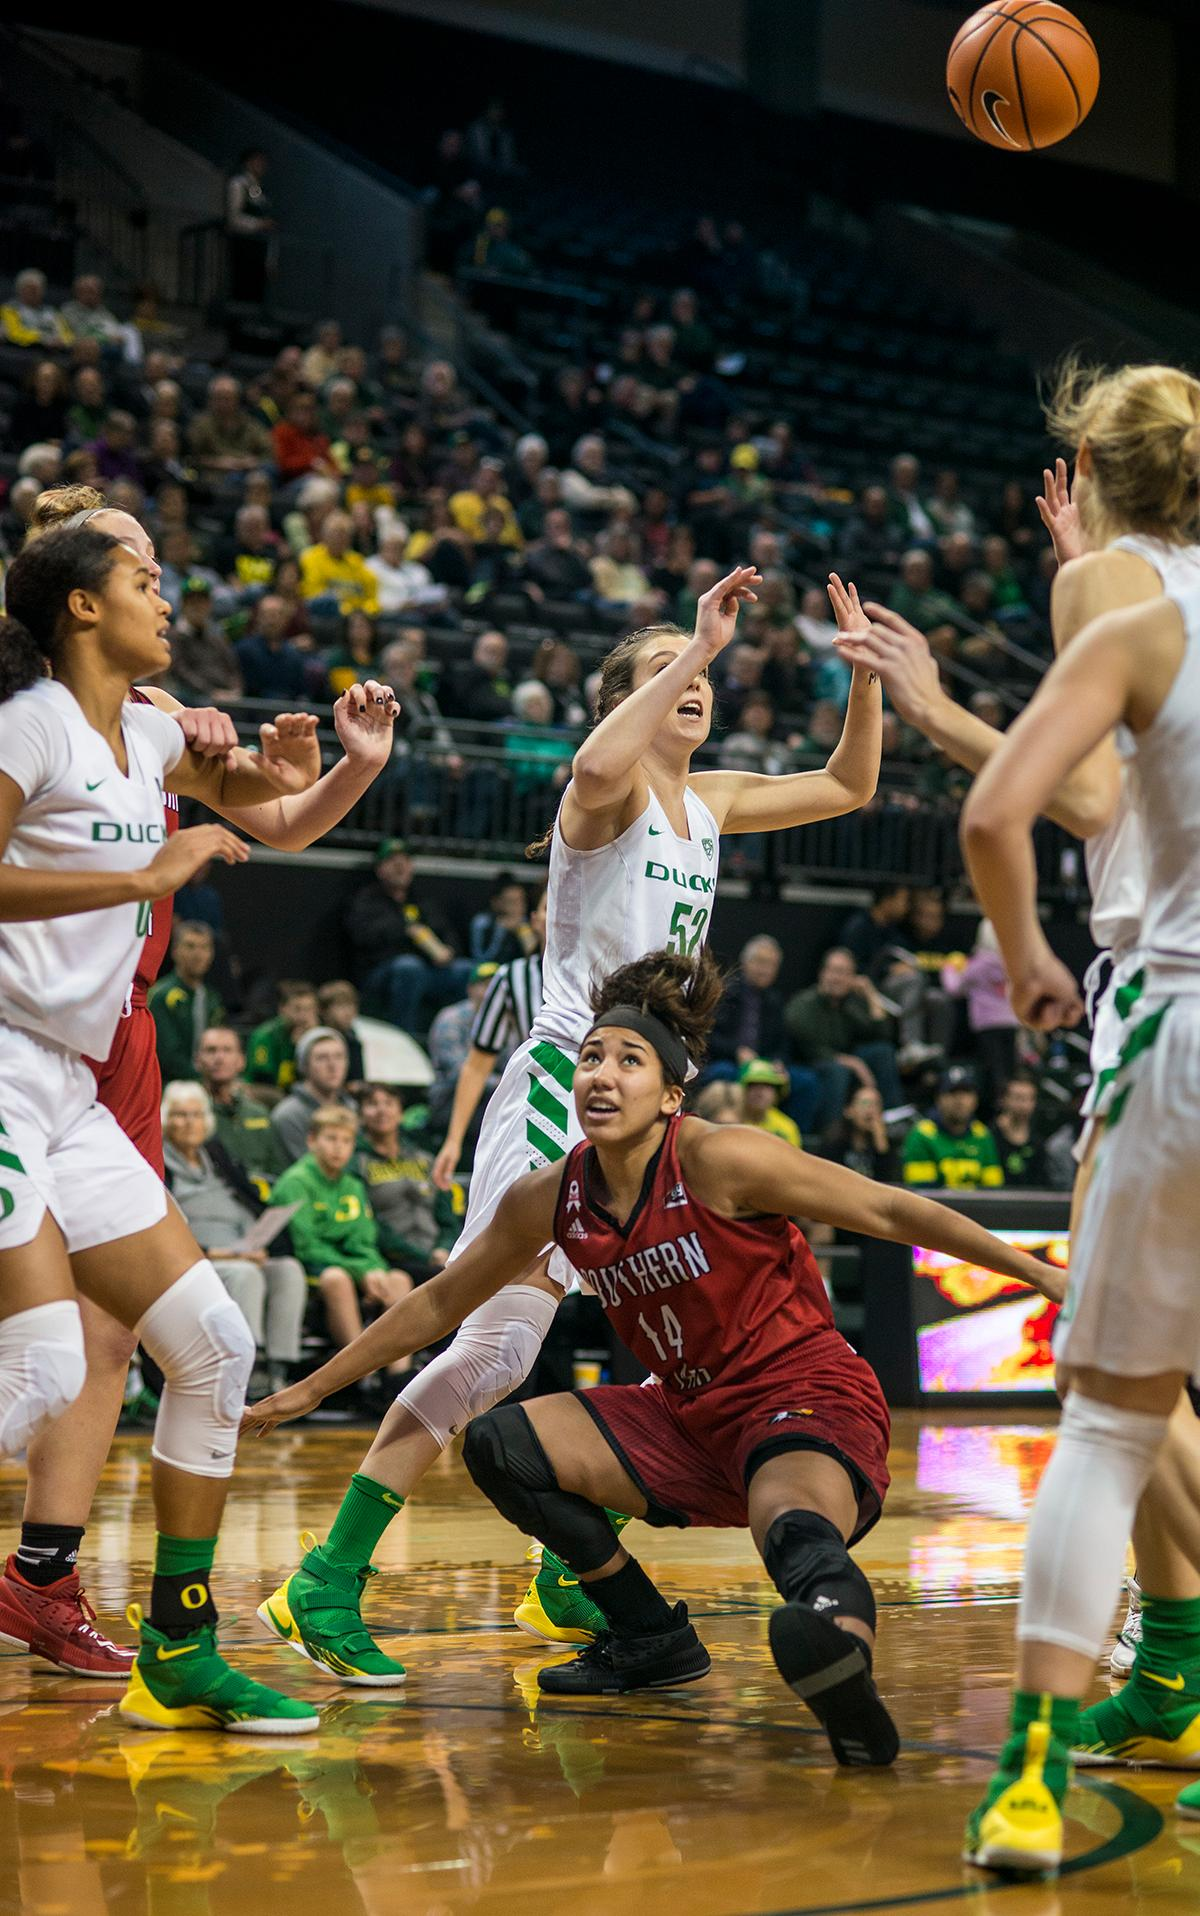 The Oregon Ducks and Southern Utah Thunderbirds struggle for a loose ball. The University of Oregon Ducks women basketball team defeated the Southern Utah Thunderbirds 98-38 in Matthew Knight Arena Saturday afternoon. The Ducks had four players in double-digits: Ruthy Hebard with 13; Mallory McGwire with 10; Lexi Bando with 17 which included four three-pointers; and Sabrina Ionescu with 16 points. The Ducks overwhelmed the Thunderbirds, shooting 50% in field goals to South Utah's 26.8%, 53.8% in three-pointers to 12.5%, and 85.7% in free throws to 50%. The Ducks, with an overall record of 8-1, and coming into this game ranked 9th, will play their next home game against Ole Miss on December 17. Photo by Rhianna Gelhart, Oregon News Lab